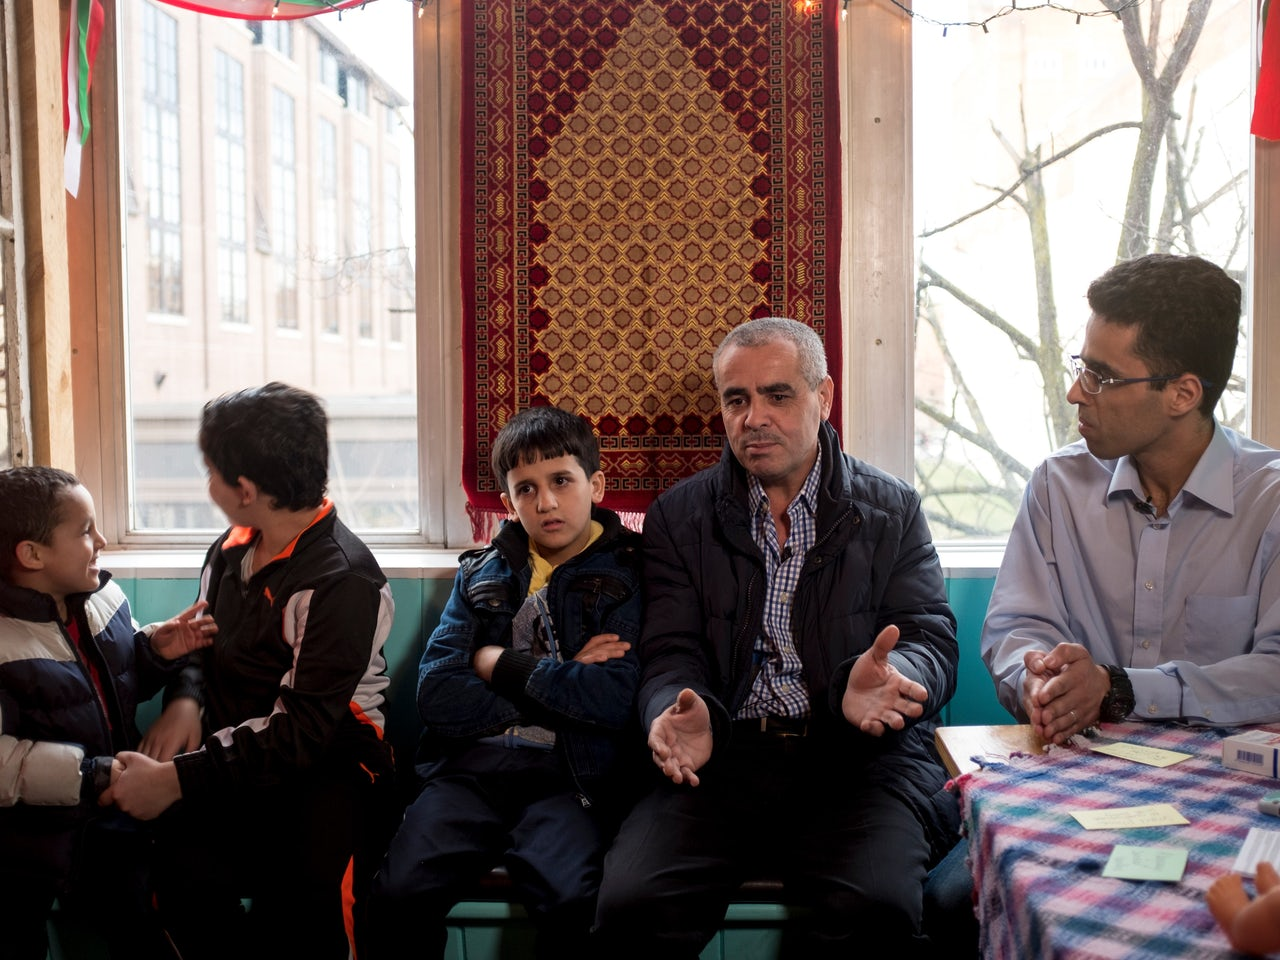 Mohammed Alghutani, center, a refugee from Syria, with his sons Moustafa, 5, Haroon, 12, and Ahmed, 10. Amer Alfayadh, a translator from Iraq, sits on the right.